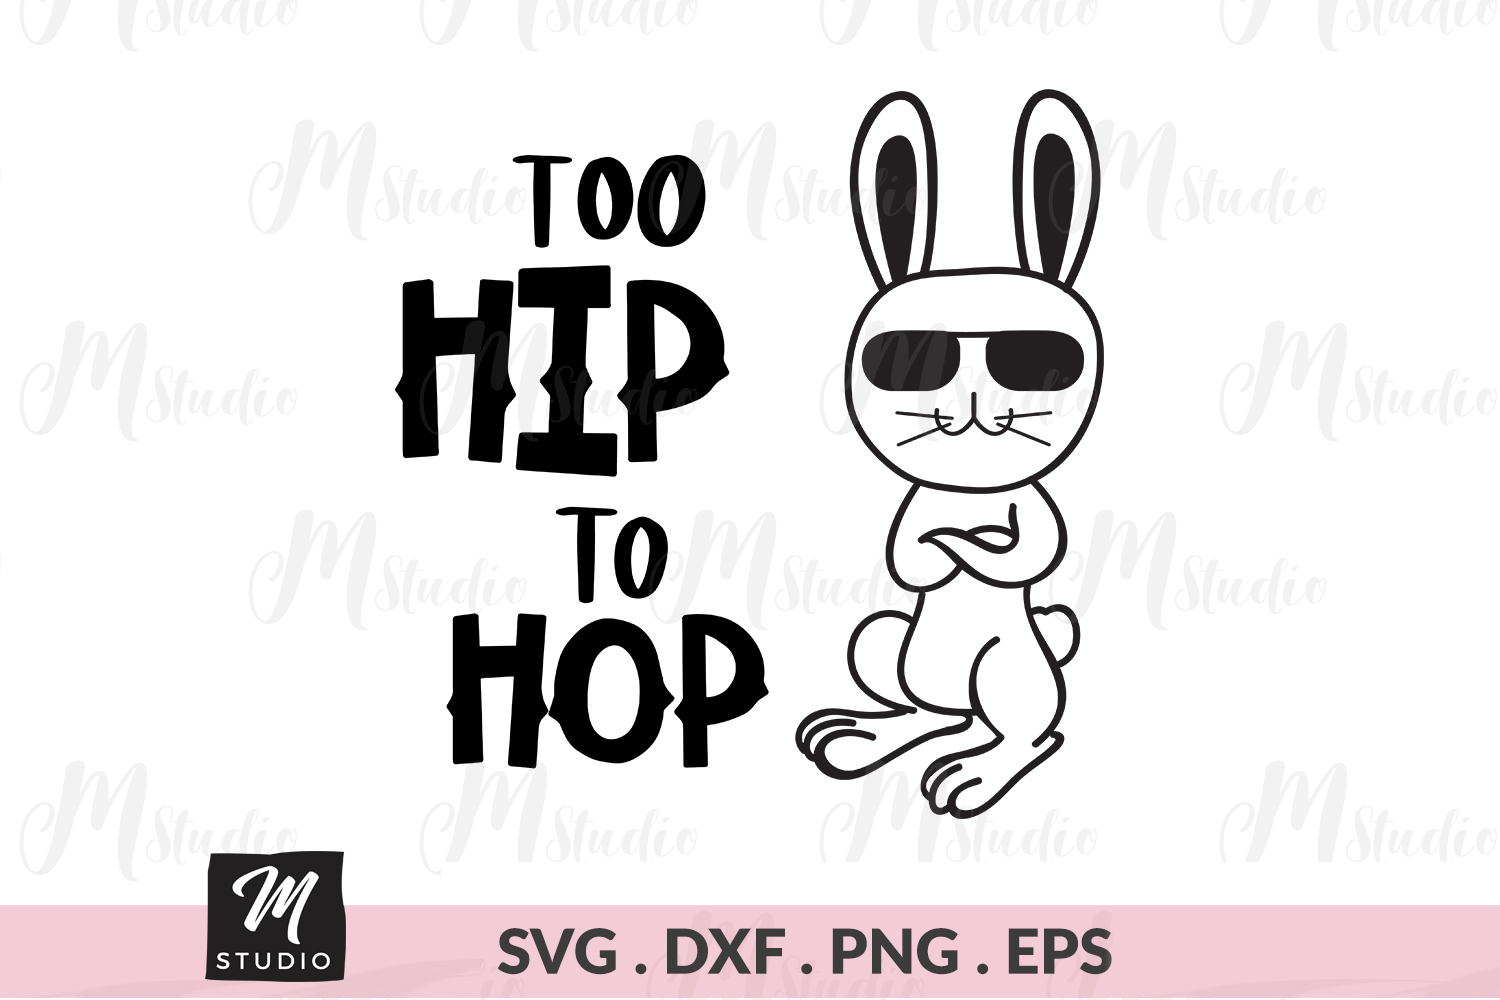 Too Hip To Hop svg. example image 1